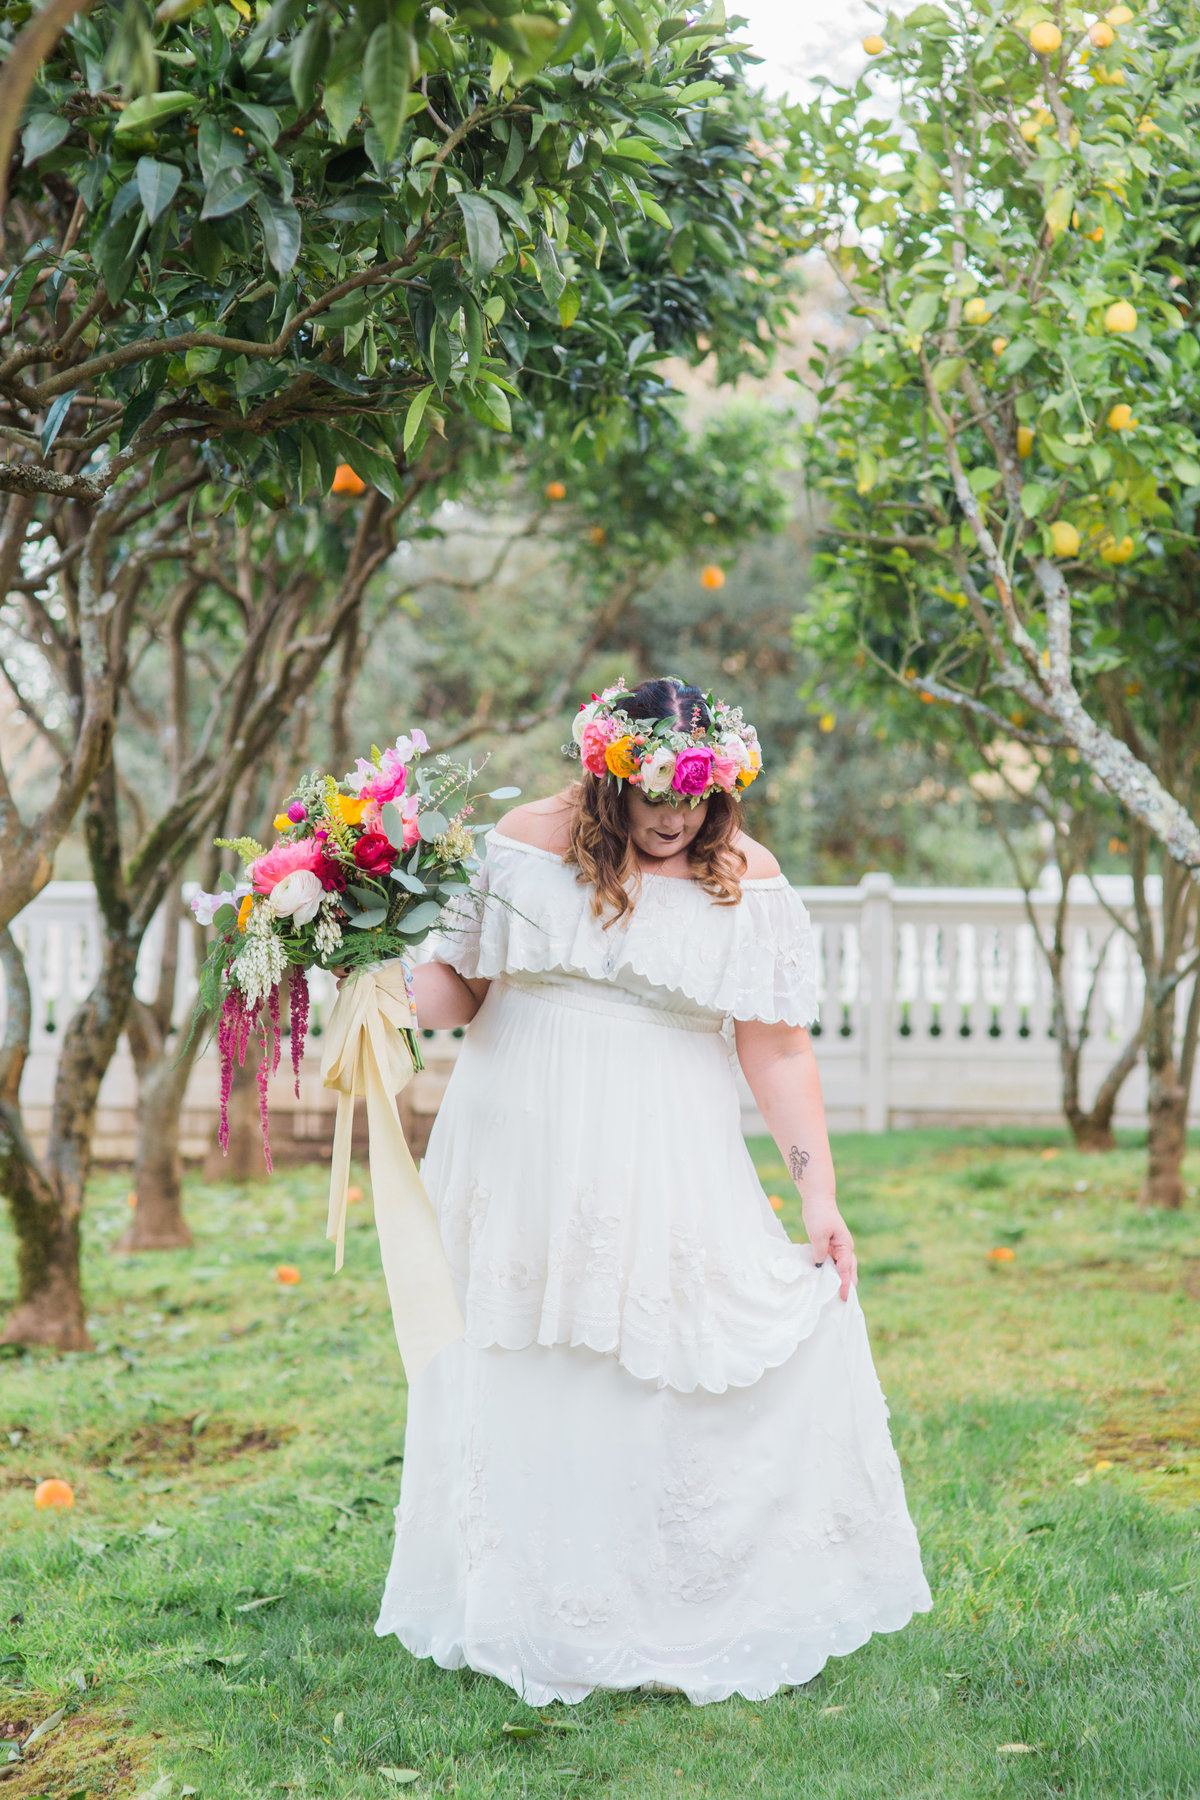 Bride show off boho dress in grove of trees Bride and groom joining cocktail hour at Madrona Manor in Healdsburg California.jpg